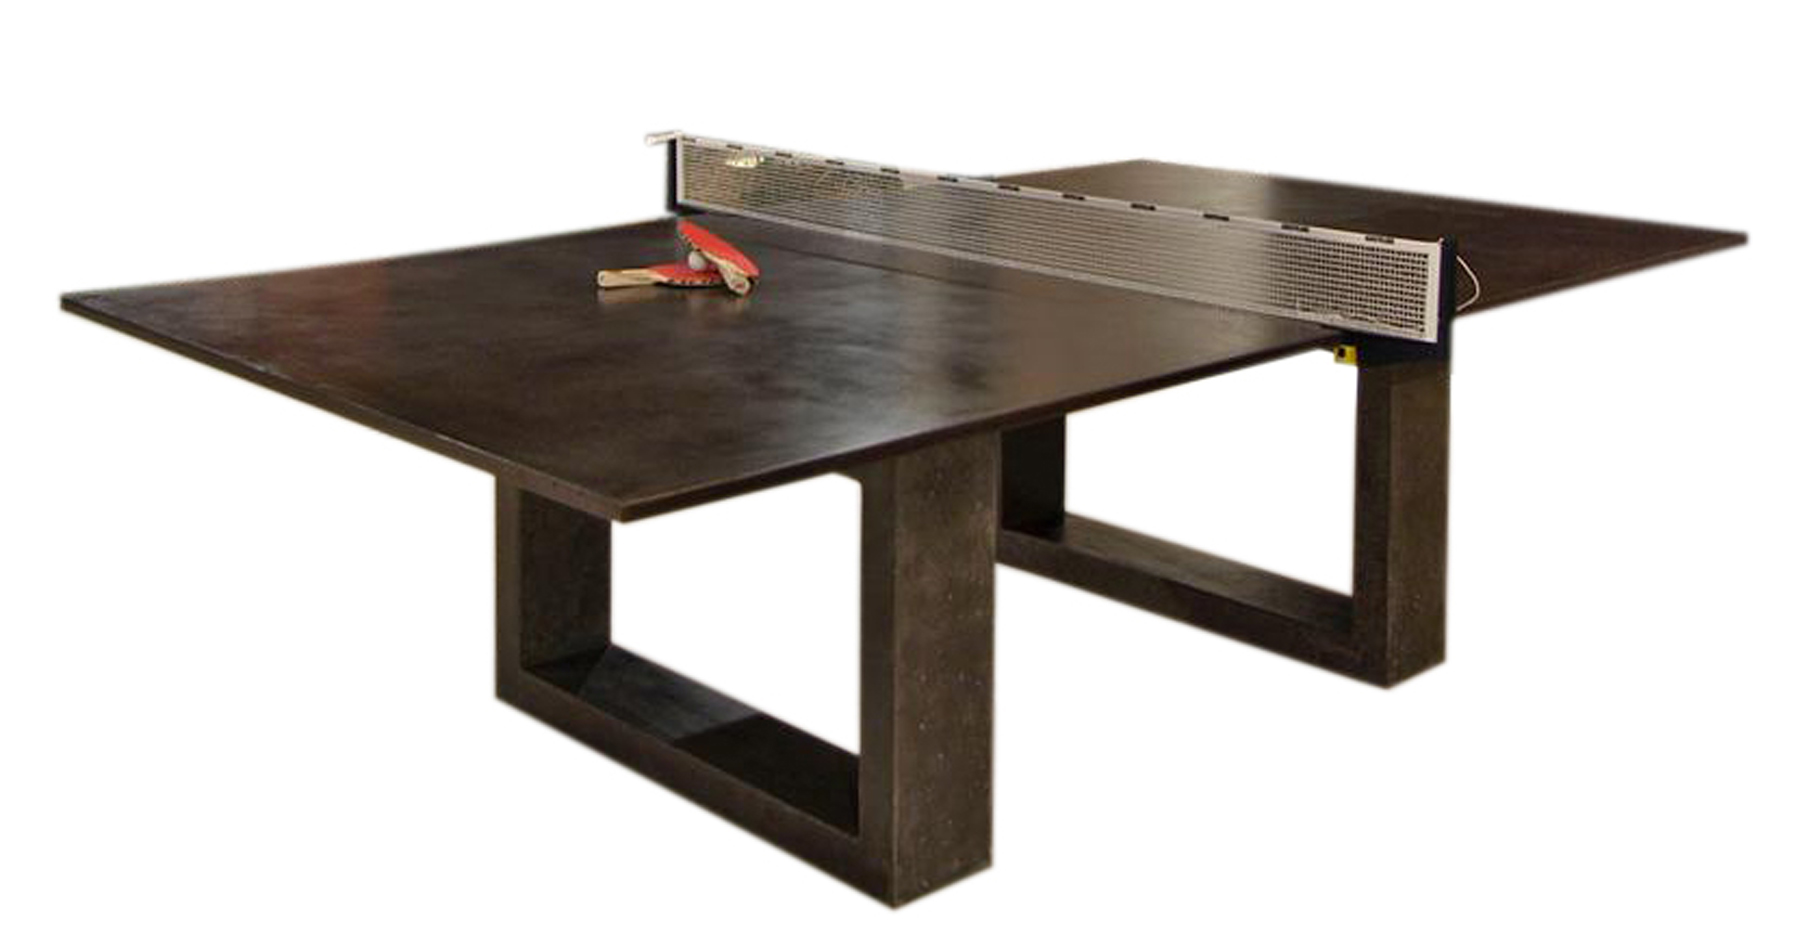 bespoke global product detail black ping pong dining table. Black Bedroom Furniture Sets. Home Design Ideas